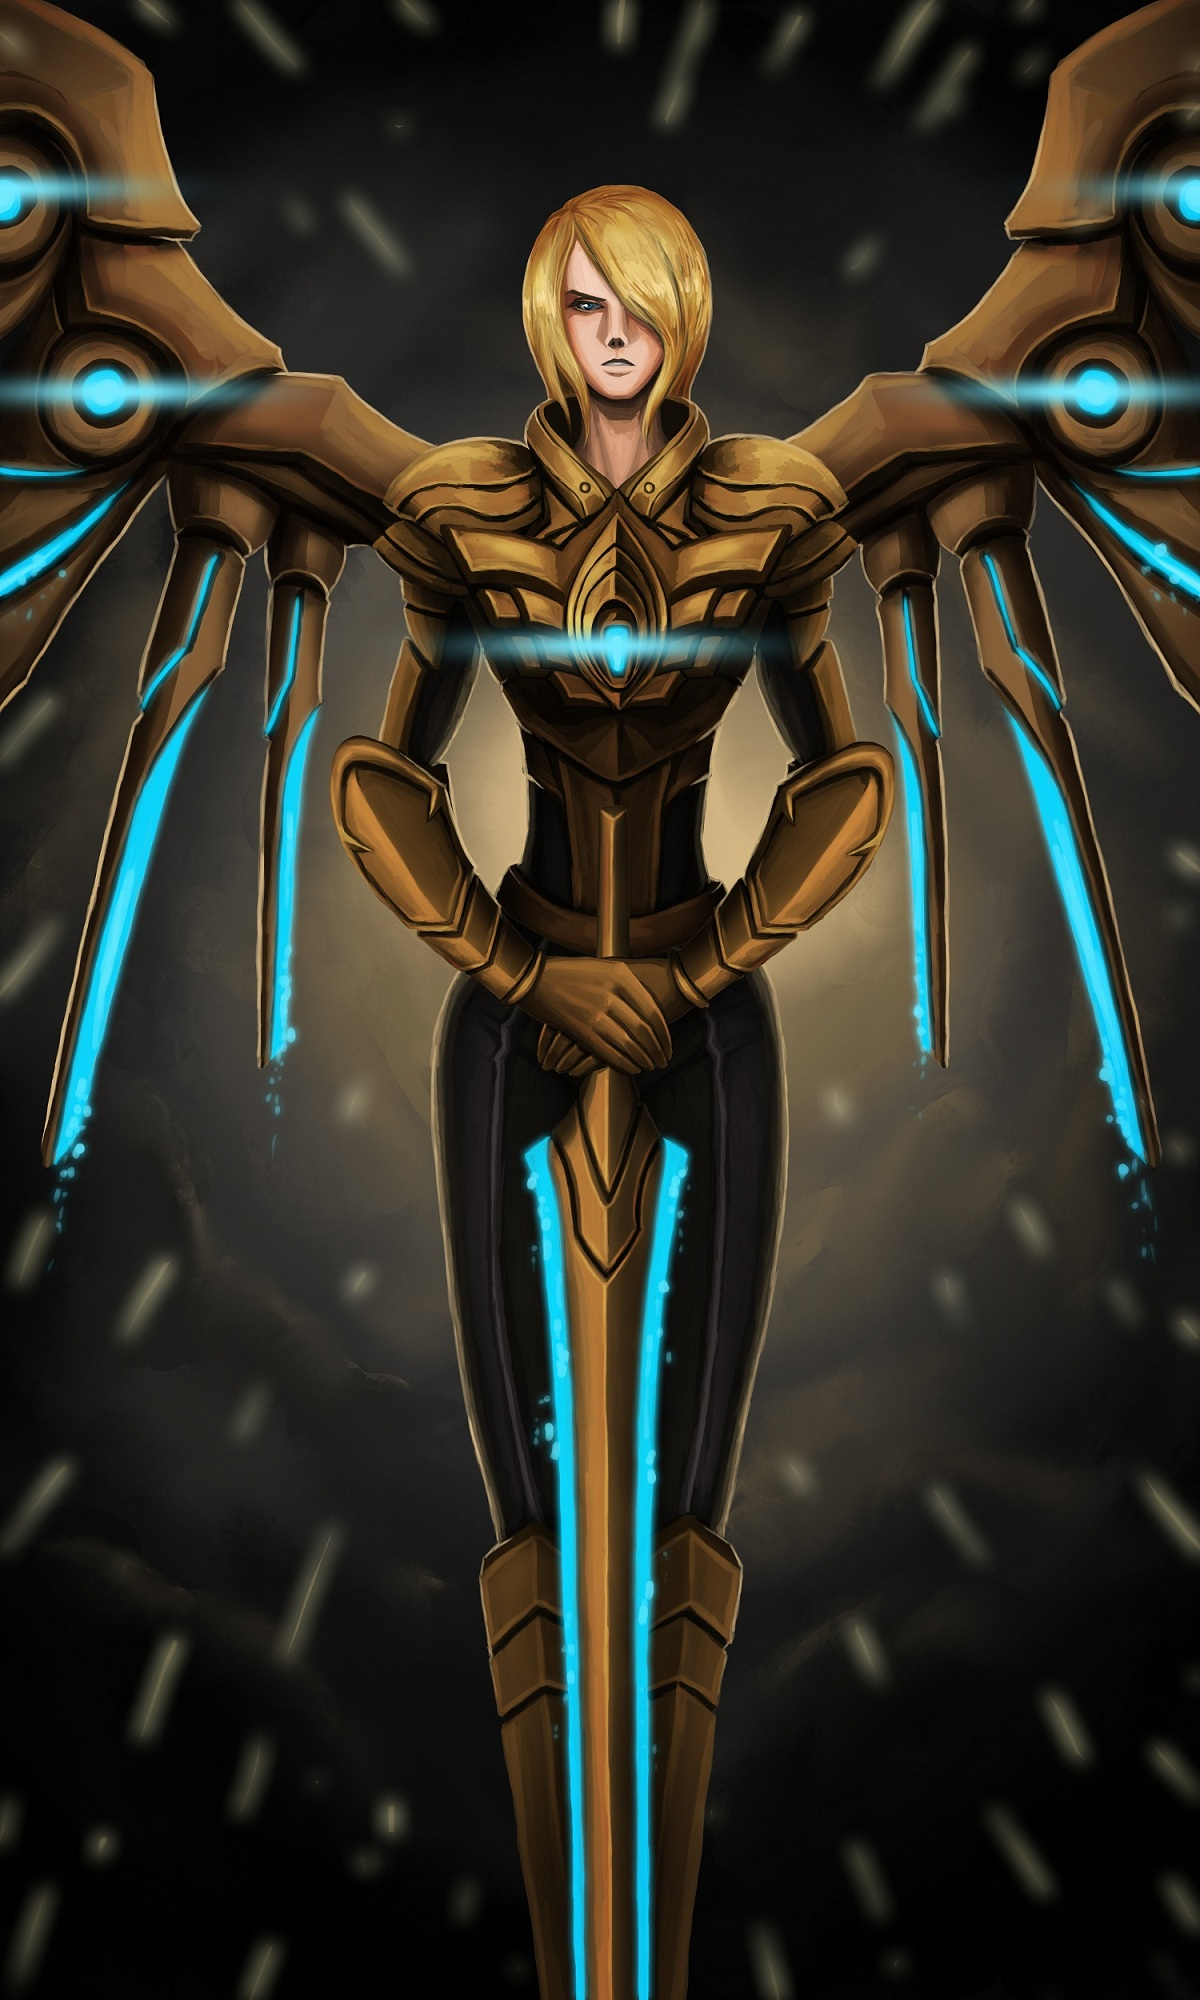 Aether Wing Kayle by Naheht on DeviantArt